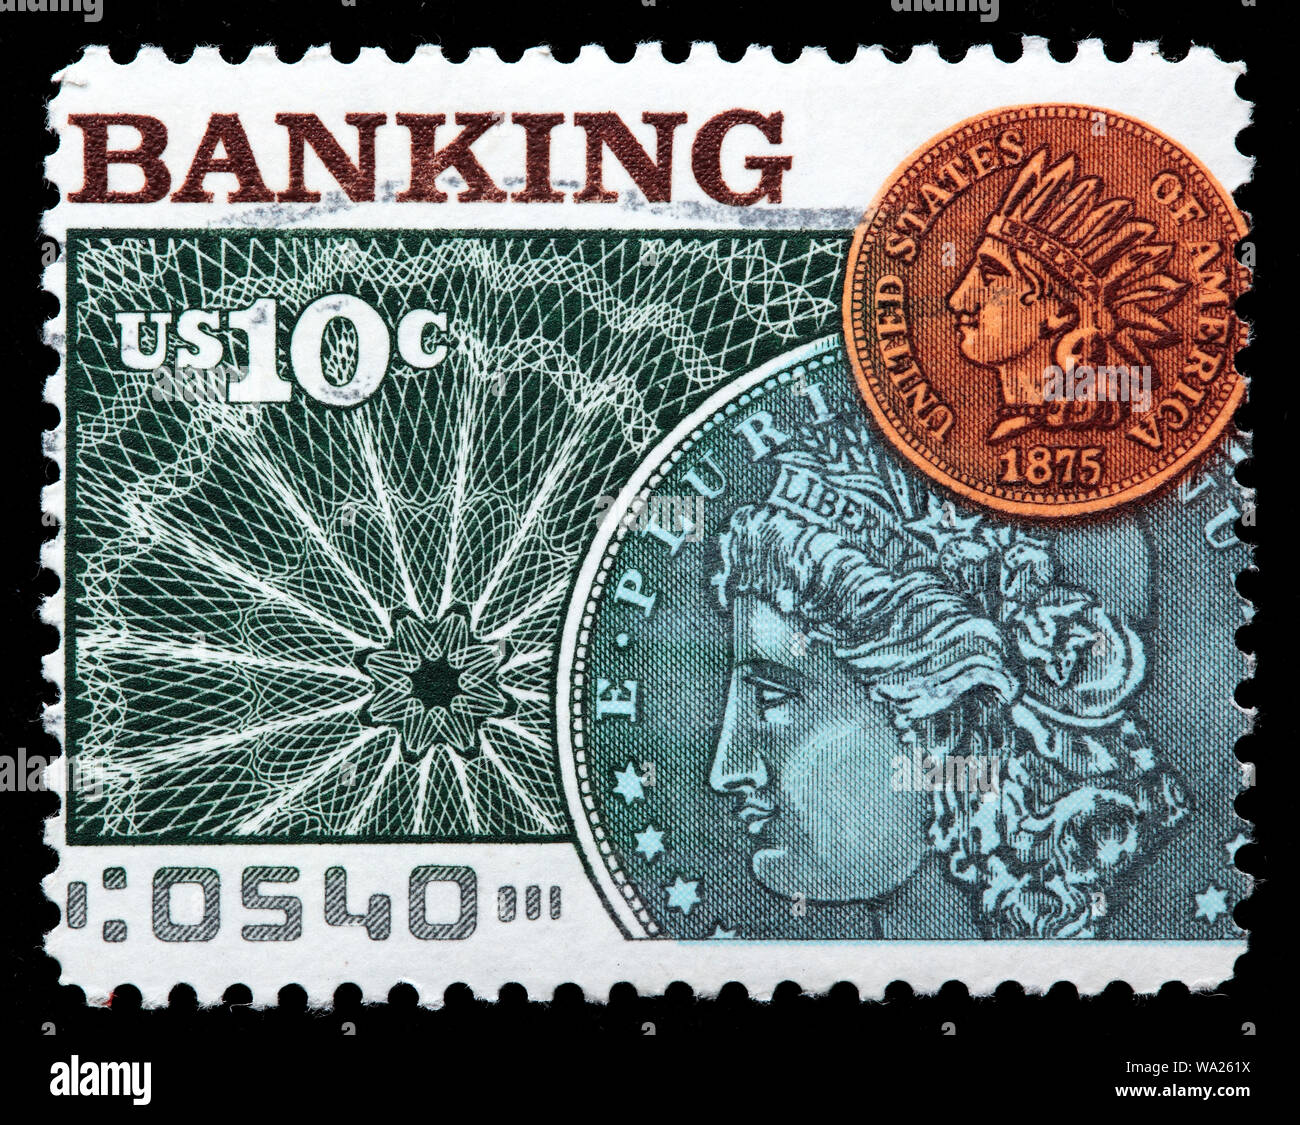 Usa 1975 Stock Photos & Usa 1975 Stock Images - Alamy